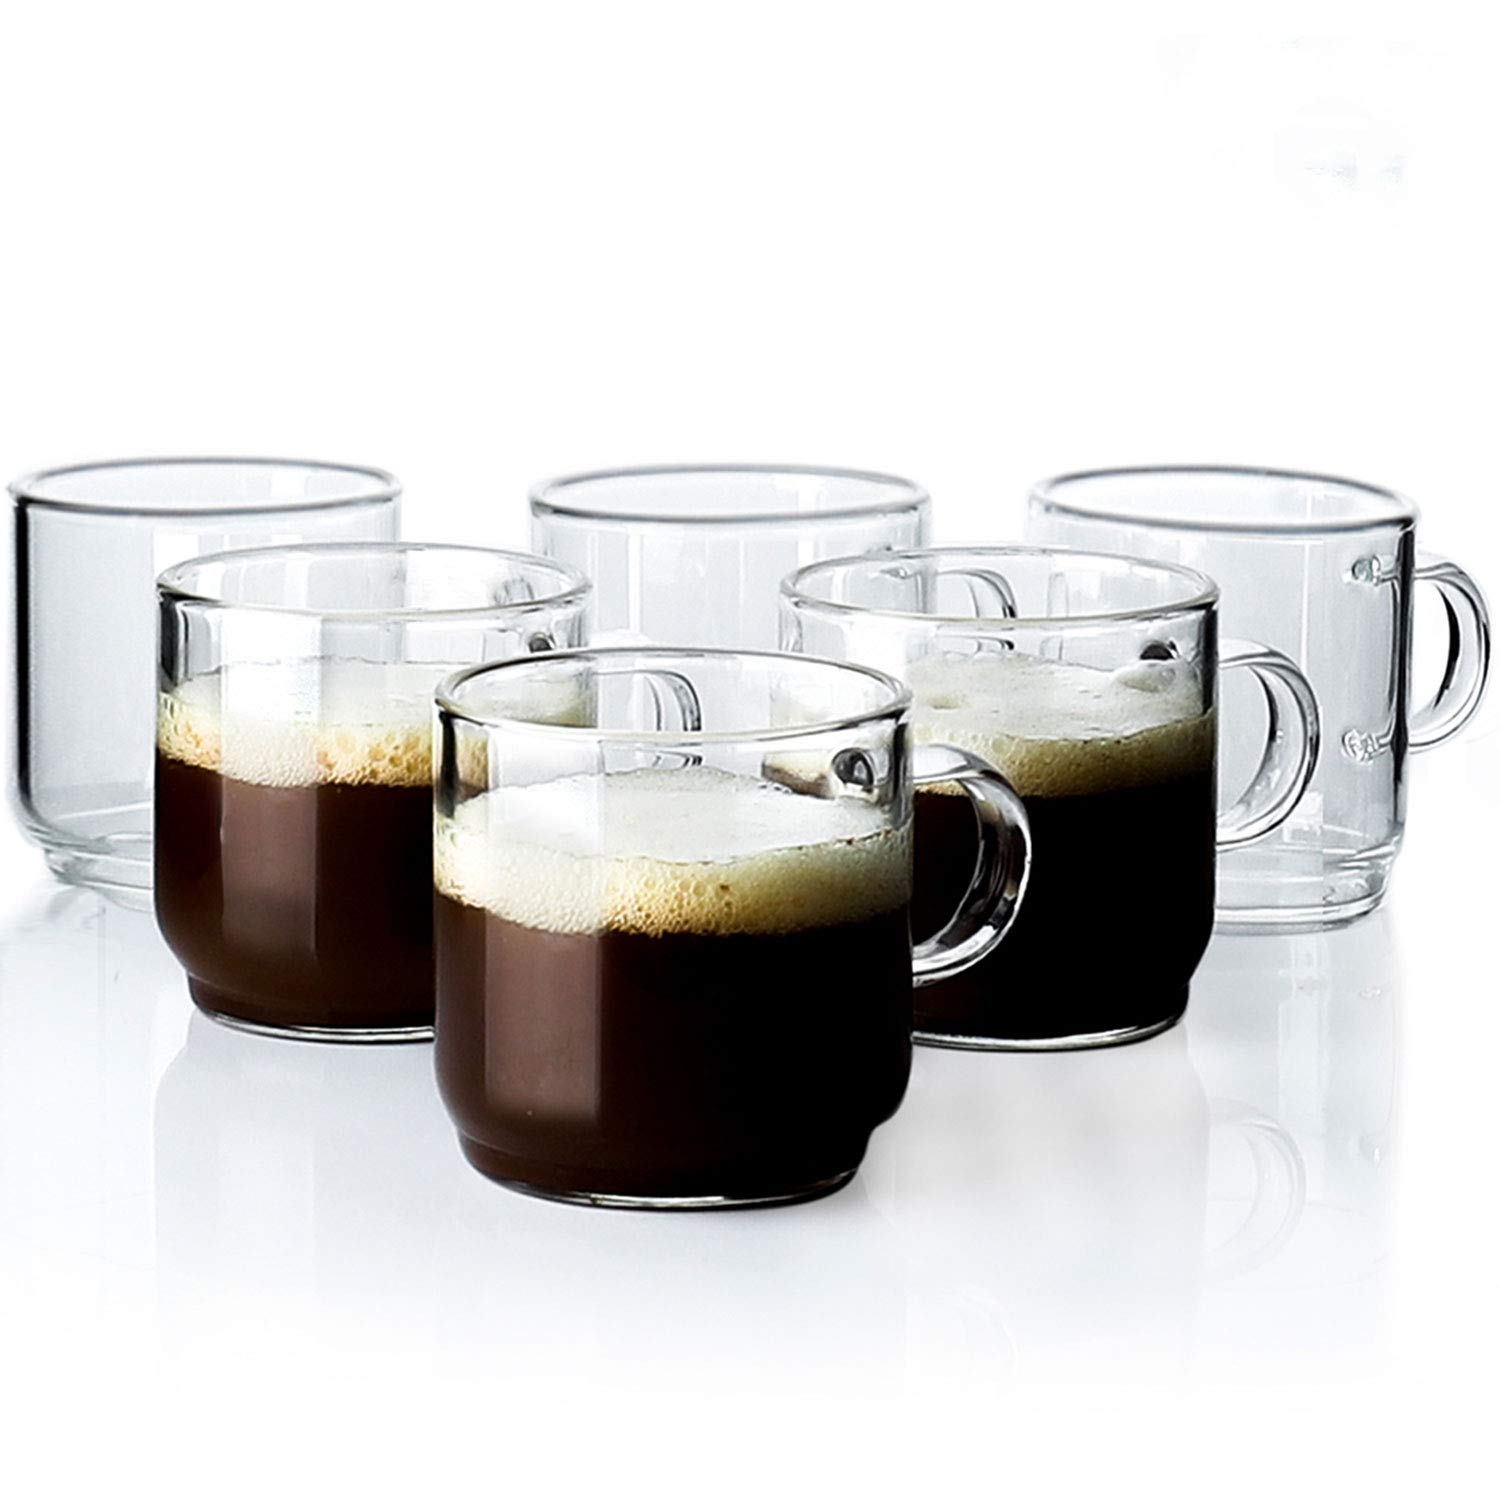 Sweese 4699 Espresso Cups with Handle - Single Walled Borosilicate Glass - 3.4 Ounces, Set of 6